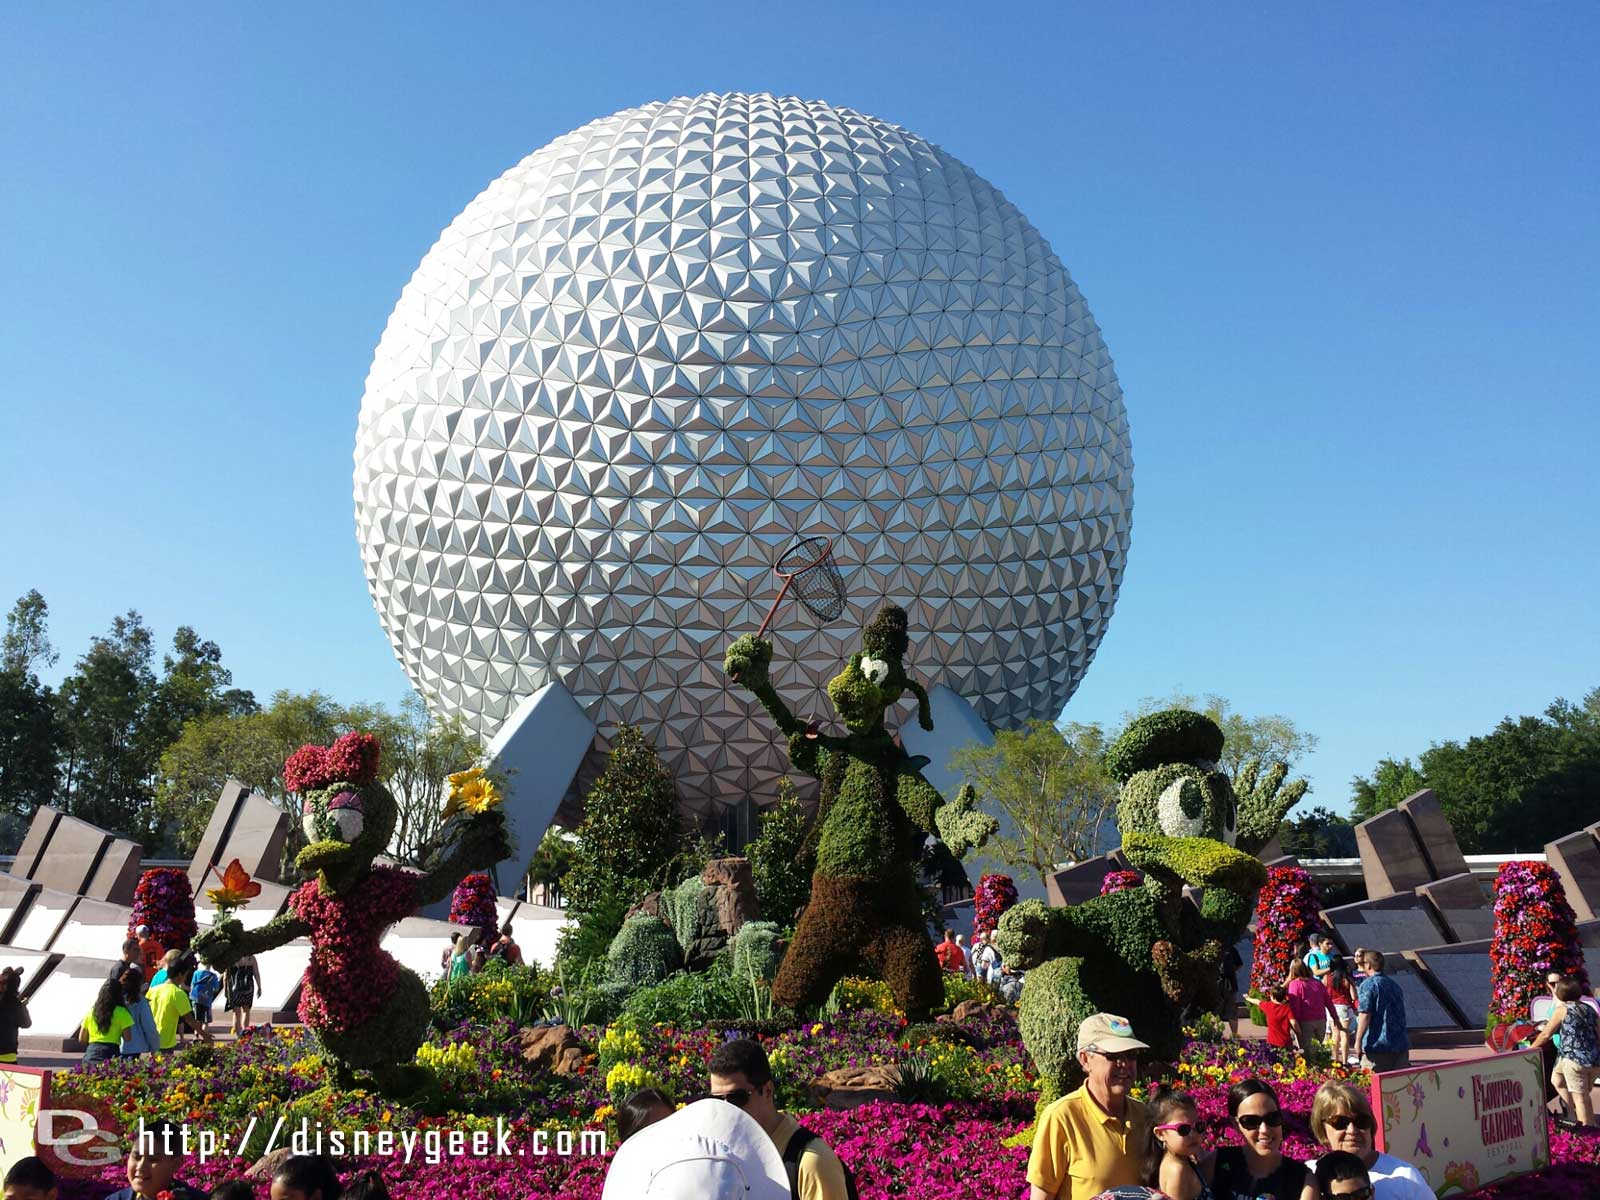 A great morning at Epcot.  The entrance topiary display –  Epcot International Flower & Garden Festival